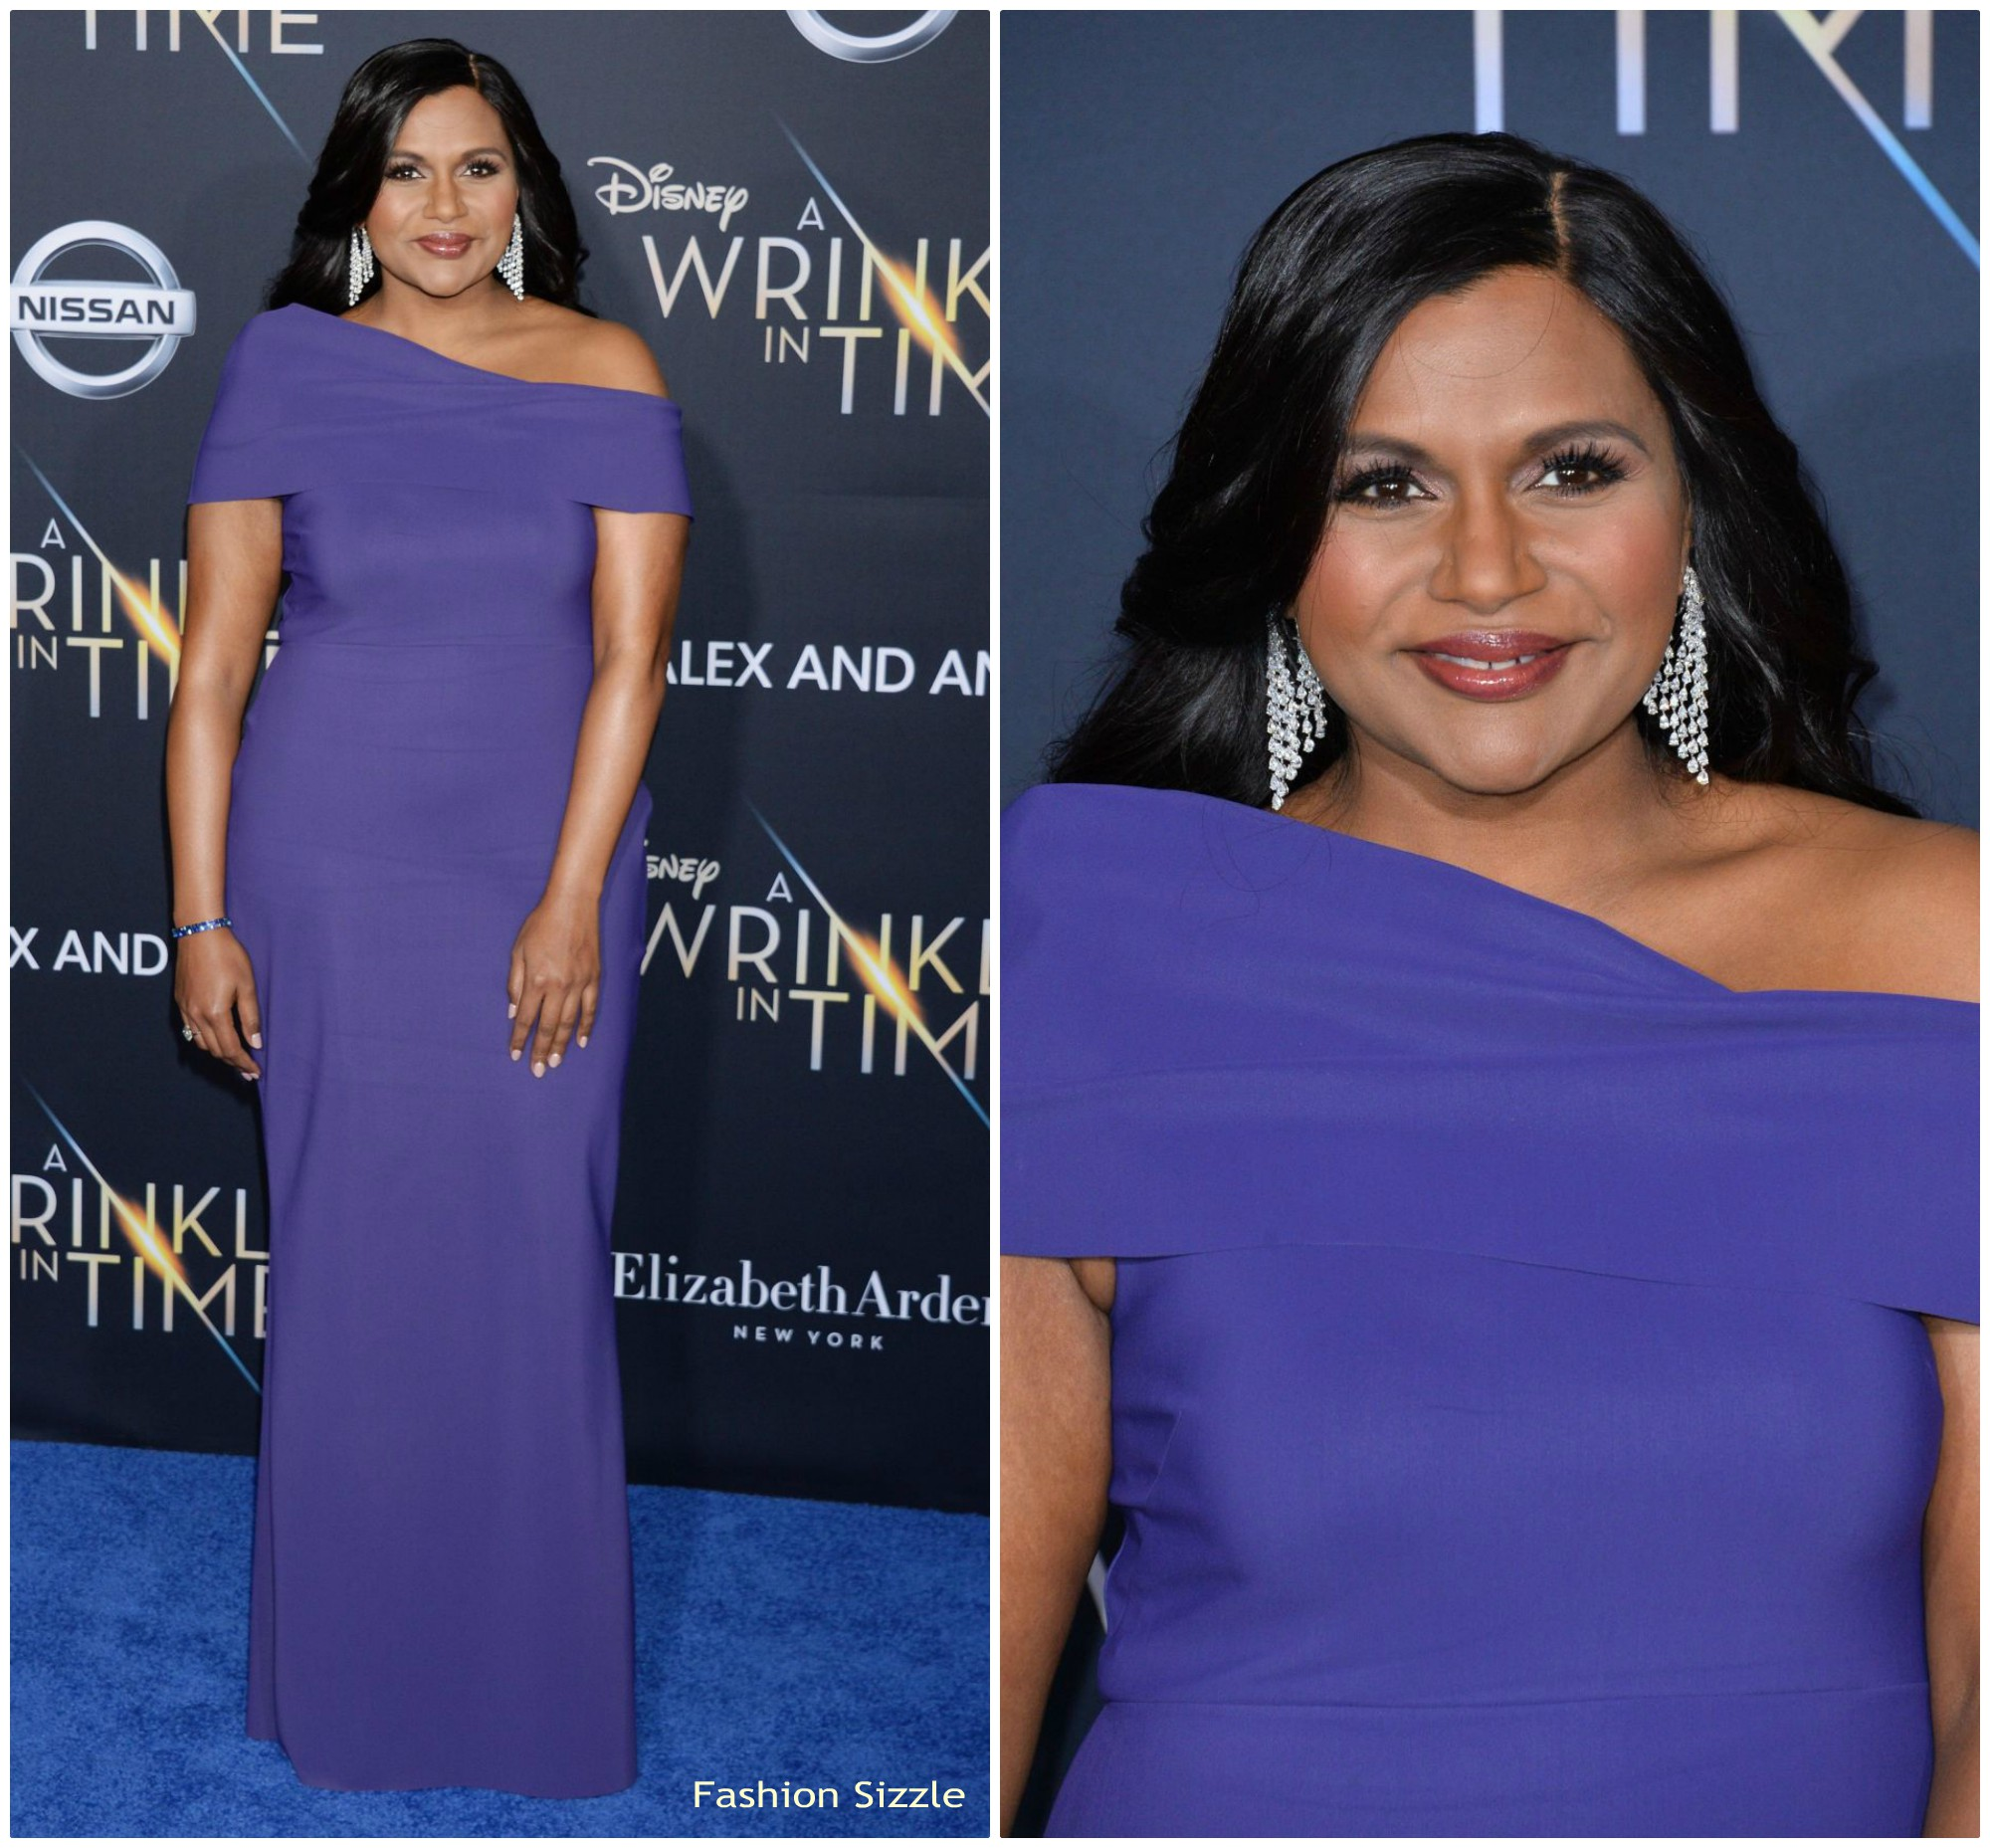 Mindy Kaling In Greta Constantine A Wrinkle In Time La Premiere Fashionsizzle